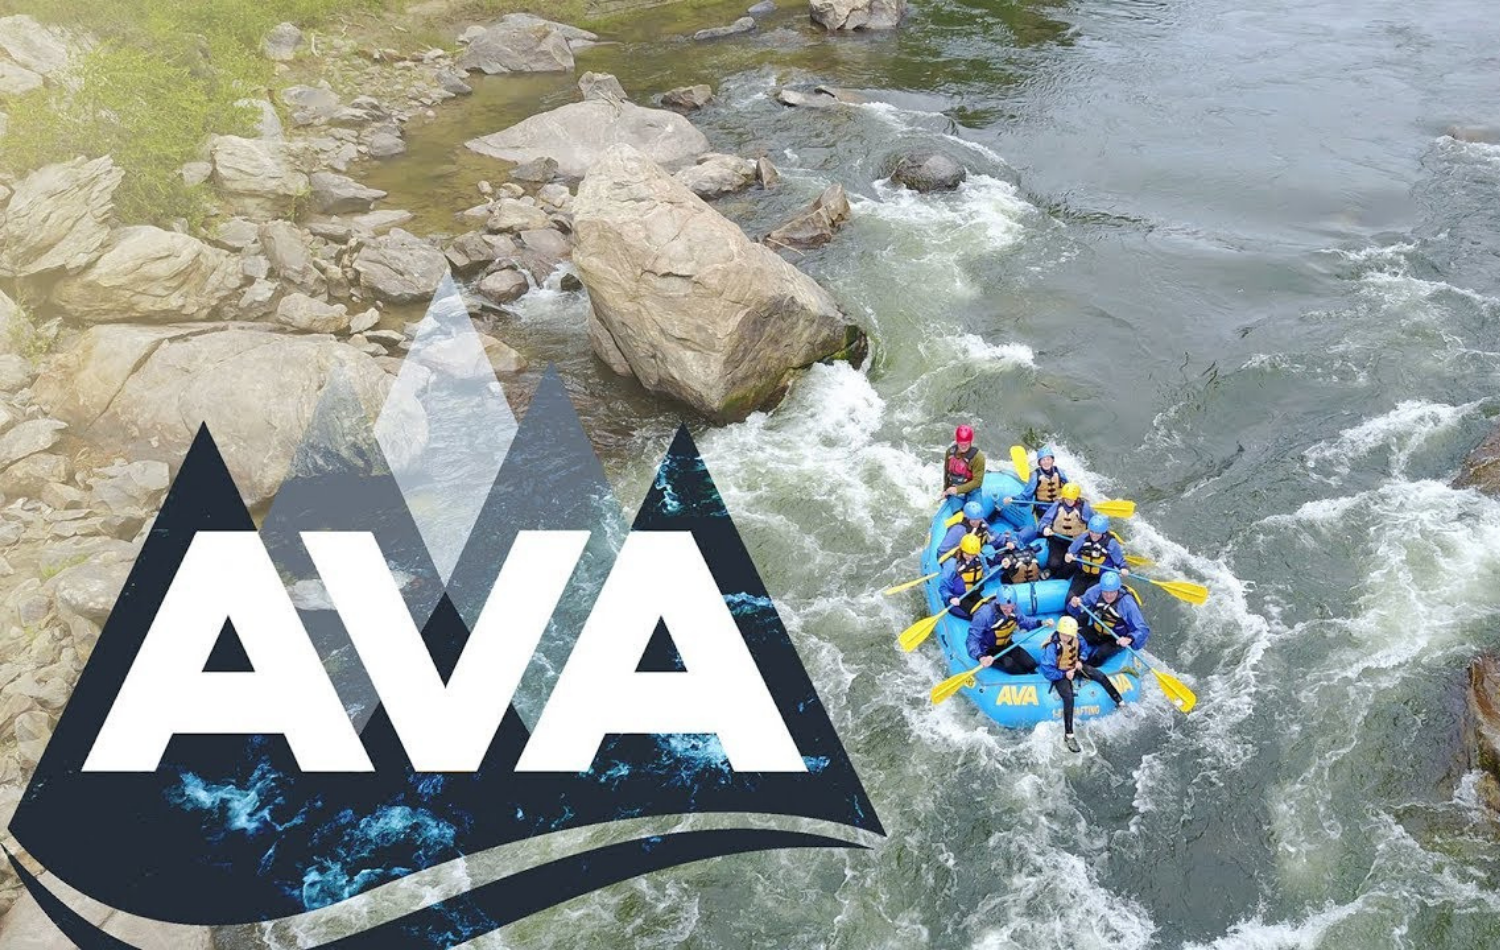 AVA Colorado Rafting & Adventures in Kremmling, CO - Grand County